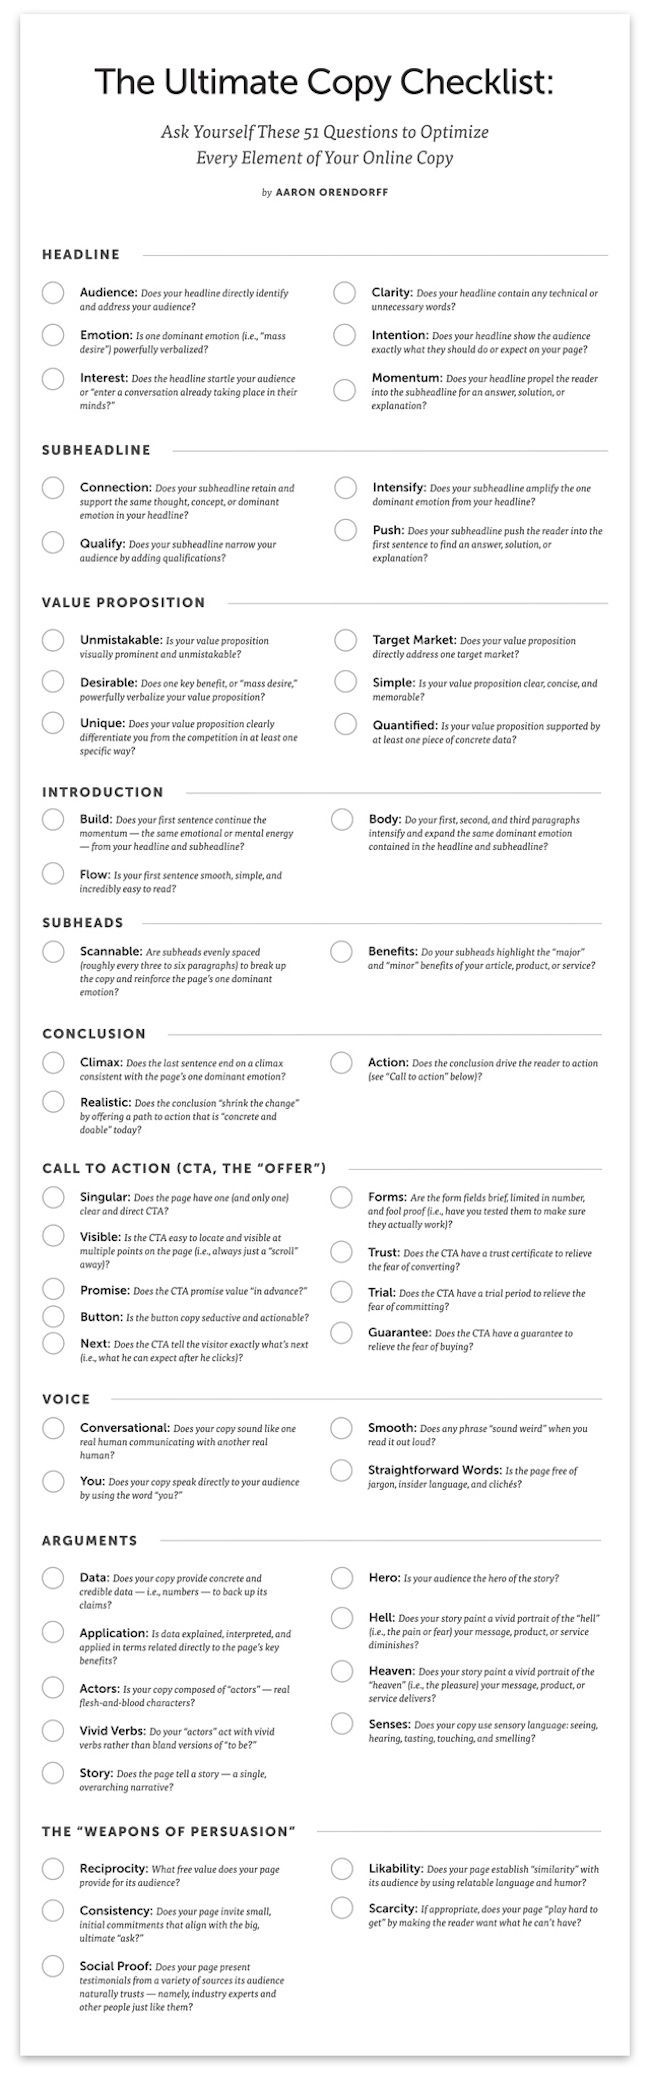 in your element essay Learn to apply ethos, pathos, and logos to your next persuasive essay and win the hearts and minds of your audience or at least get your way log in ethos, pathos, logos: be more persuasive in your next essay you can also check out this handy infographic about the elements of.